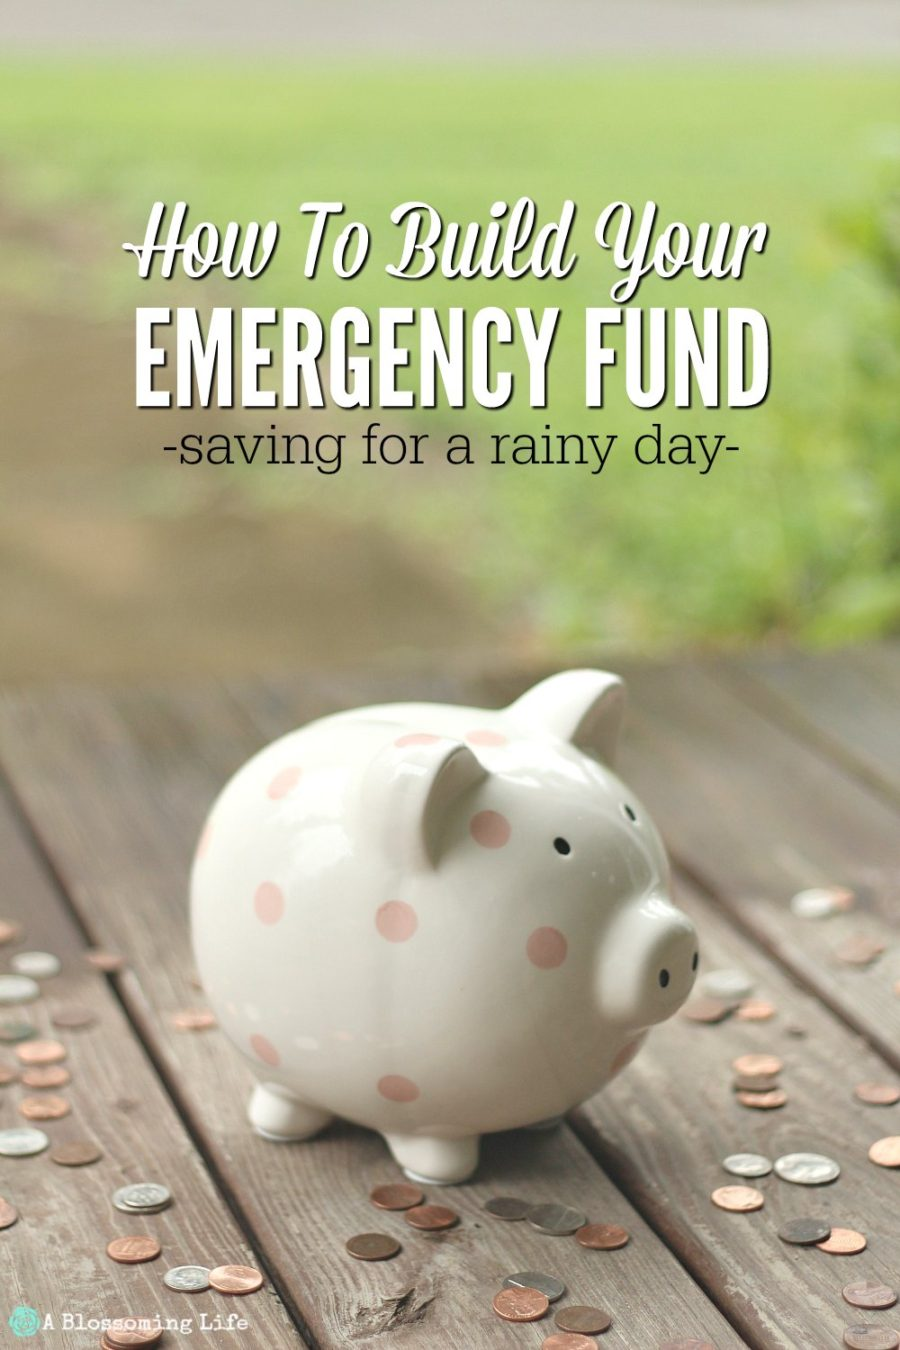 How To Buid Your Emergency Fund- Saving for a rainy day